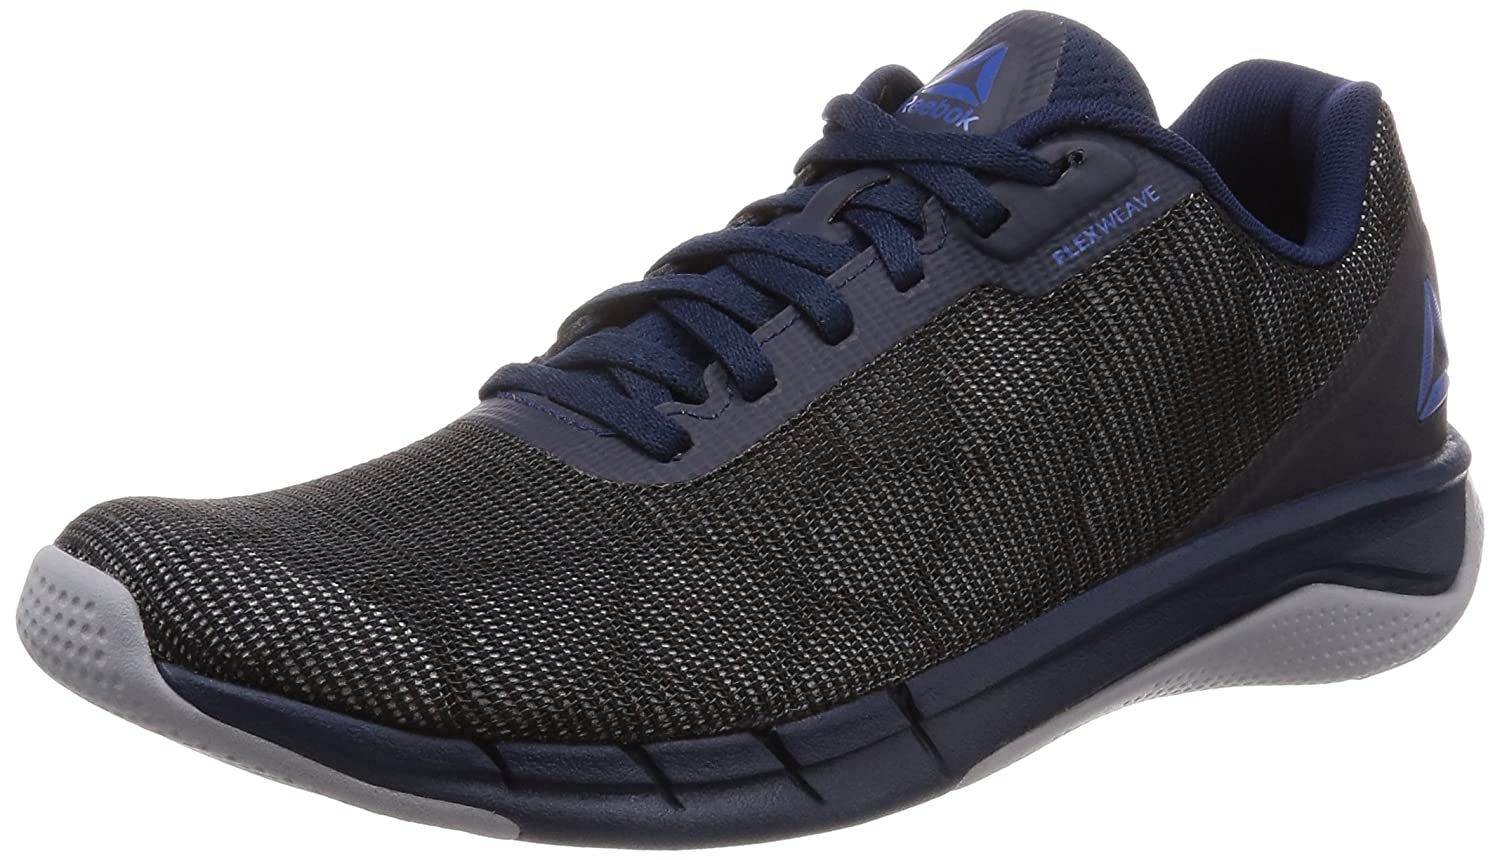 010f672436a5 Reebok Men s Fast Flexweave Trail Running Shoes  Amazon.co.uk  Shoes   Bags